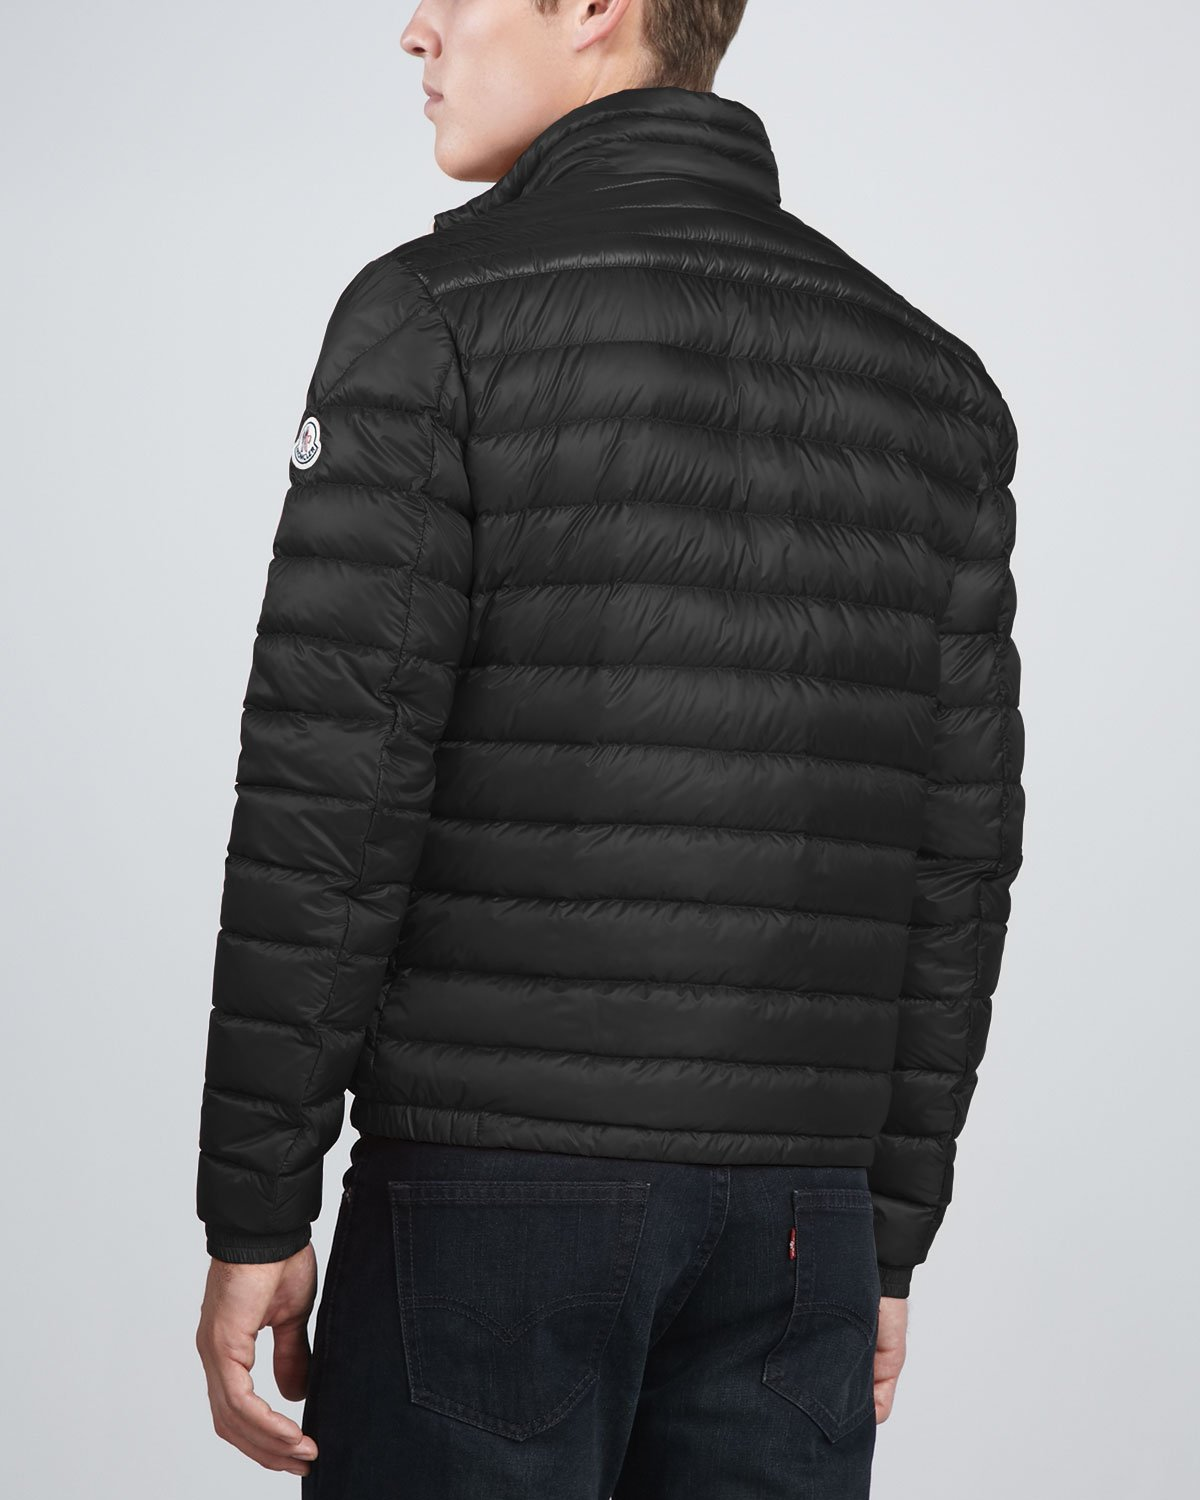 9227eaf0f Lyst - Moncler Acorus Lightweight Puffer Jacket in Black for Men